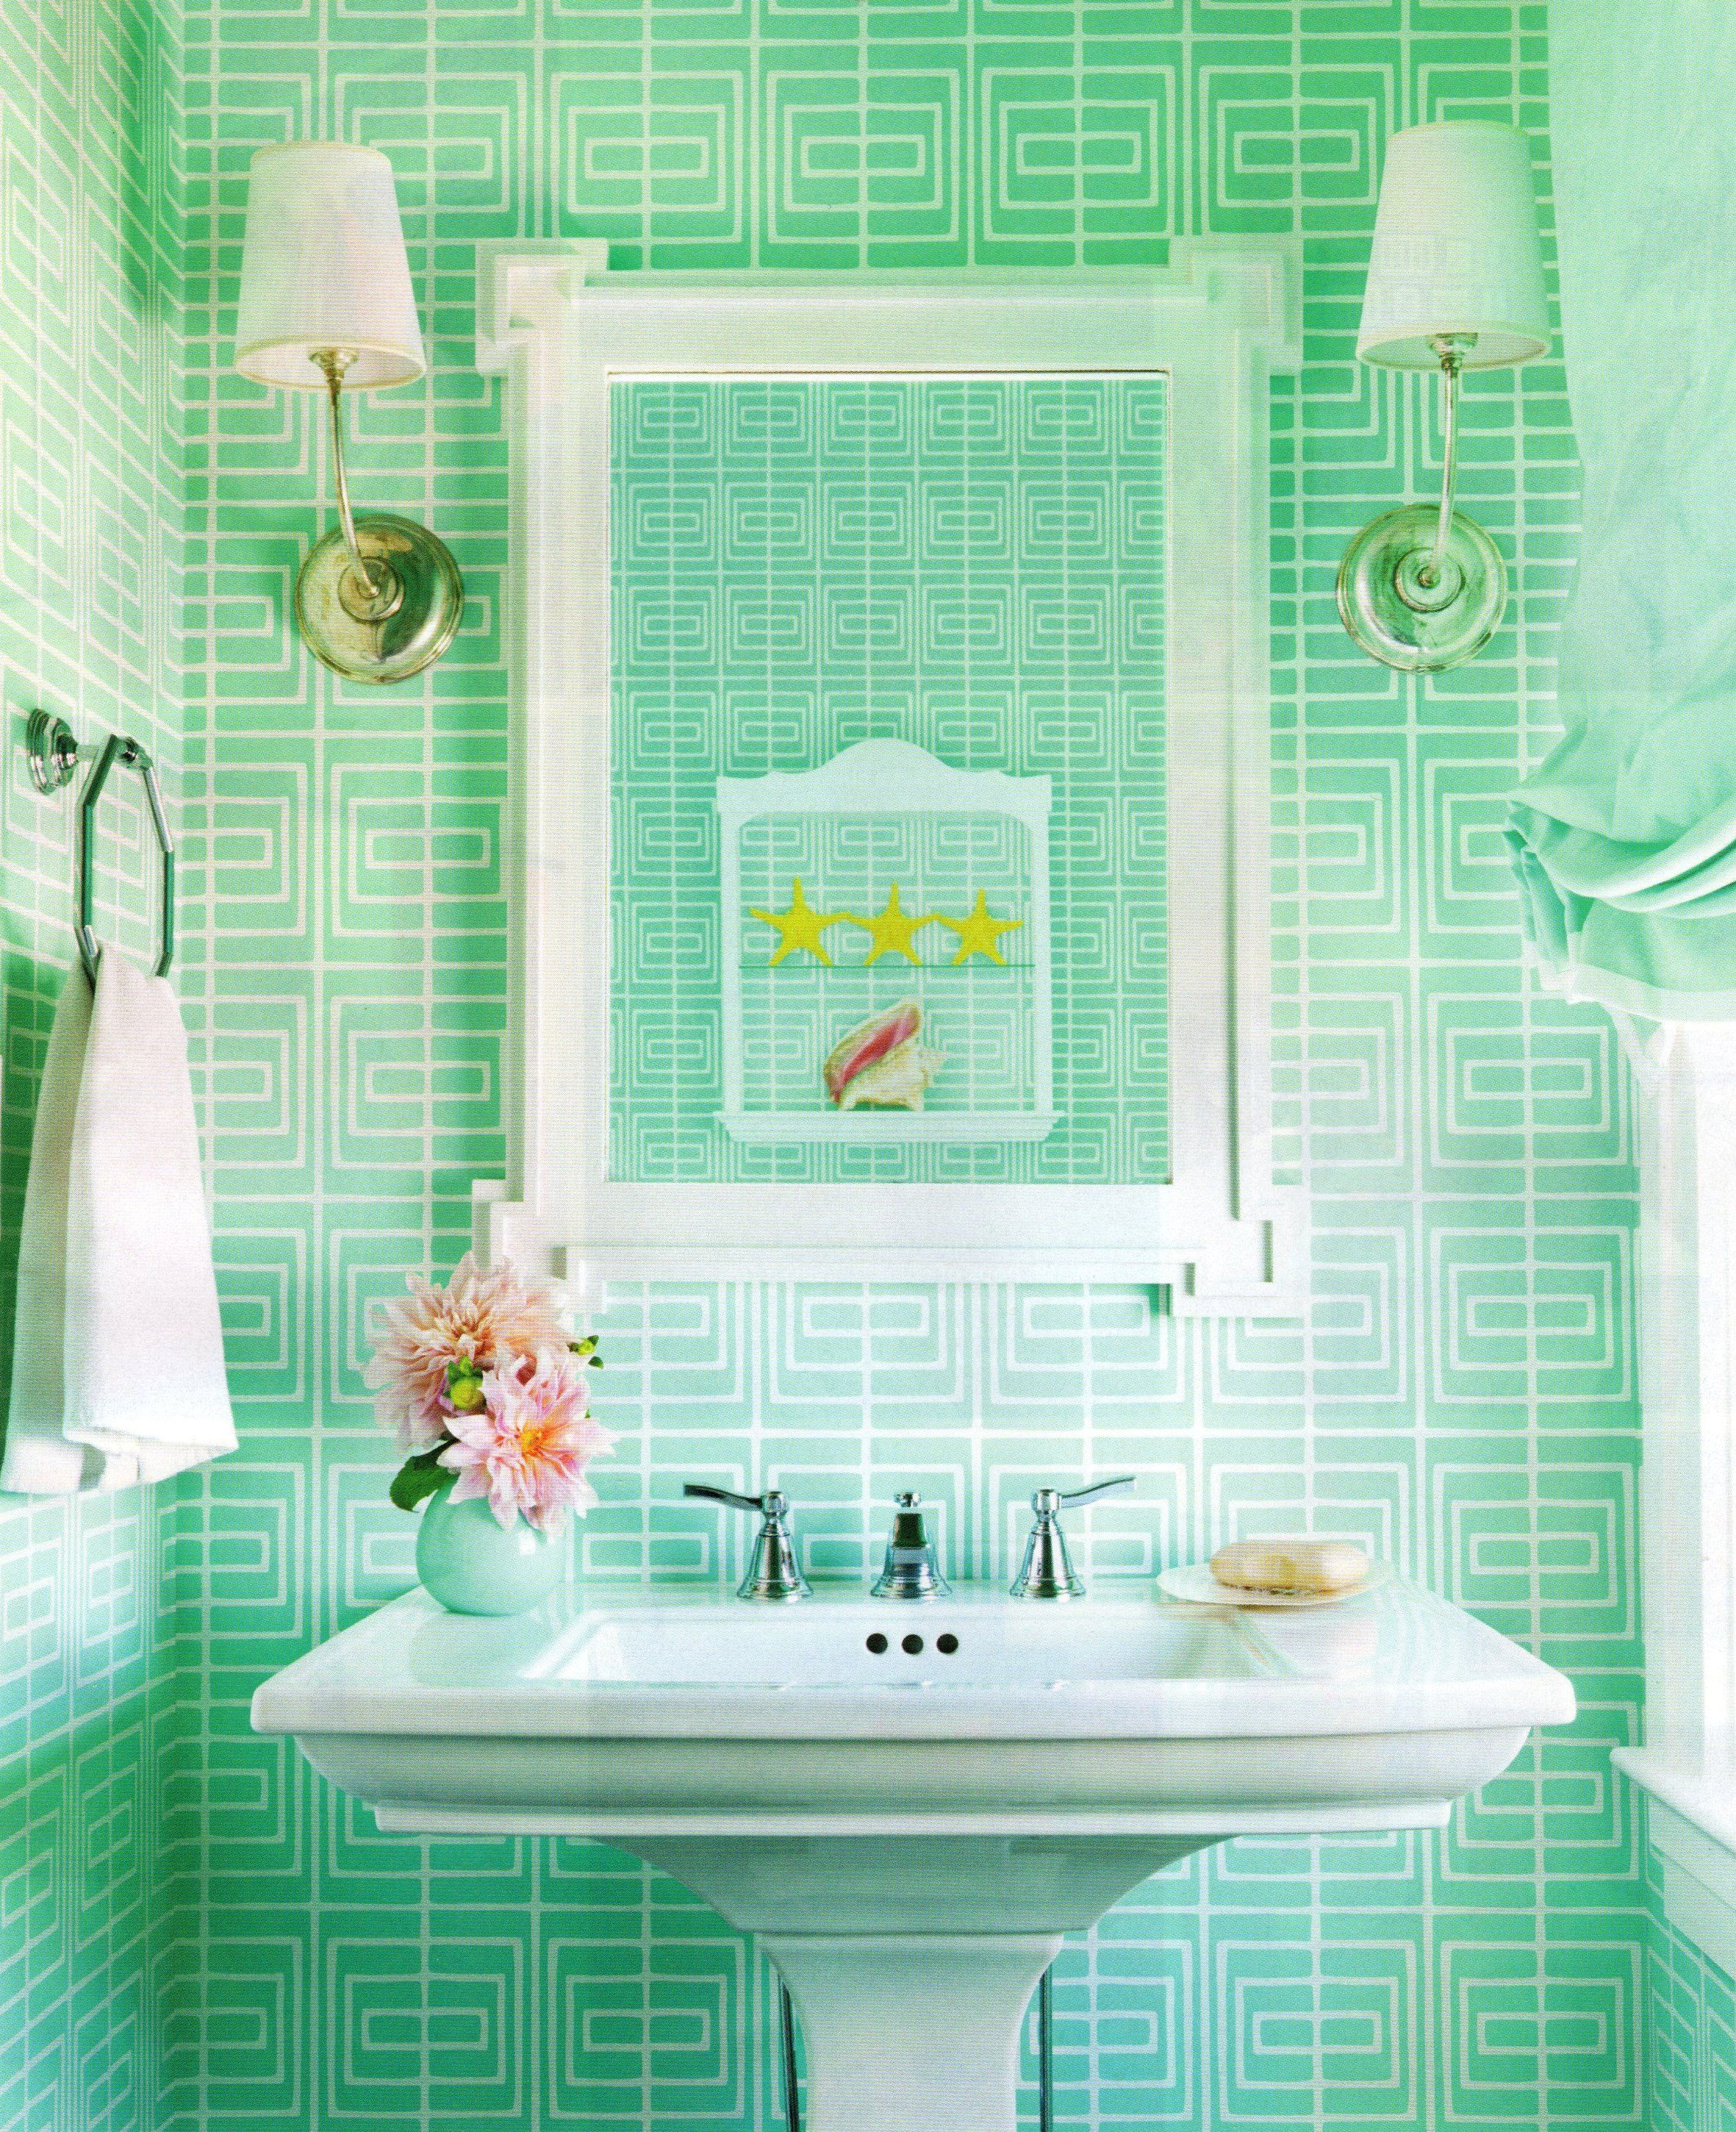 Bathroom color ideas green - Bright Green Bathroom Tiles Bring A Pretty Pop Of Fun Colors Bathrooms